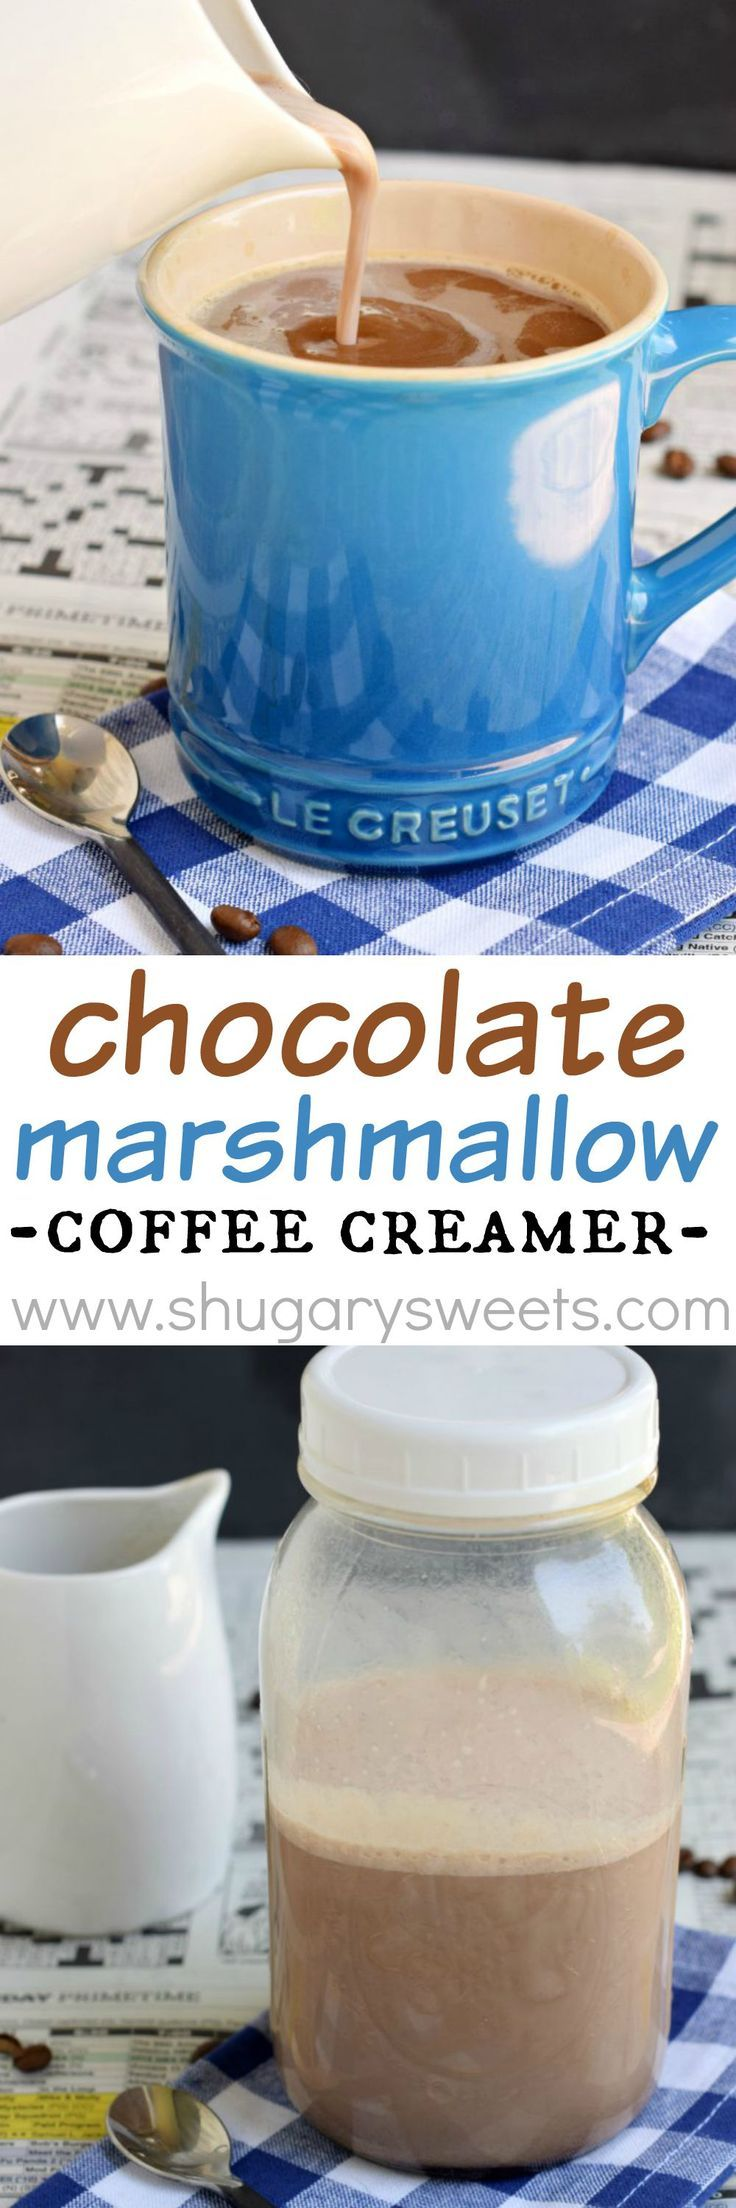 This easy, 4 ingredient Chocolate Marshmallow Coffee Creamer adds depth of flavor to your morning cup of joe! Also great in hot cocoa!